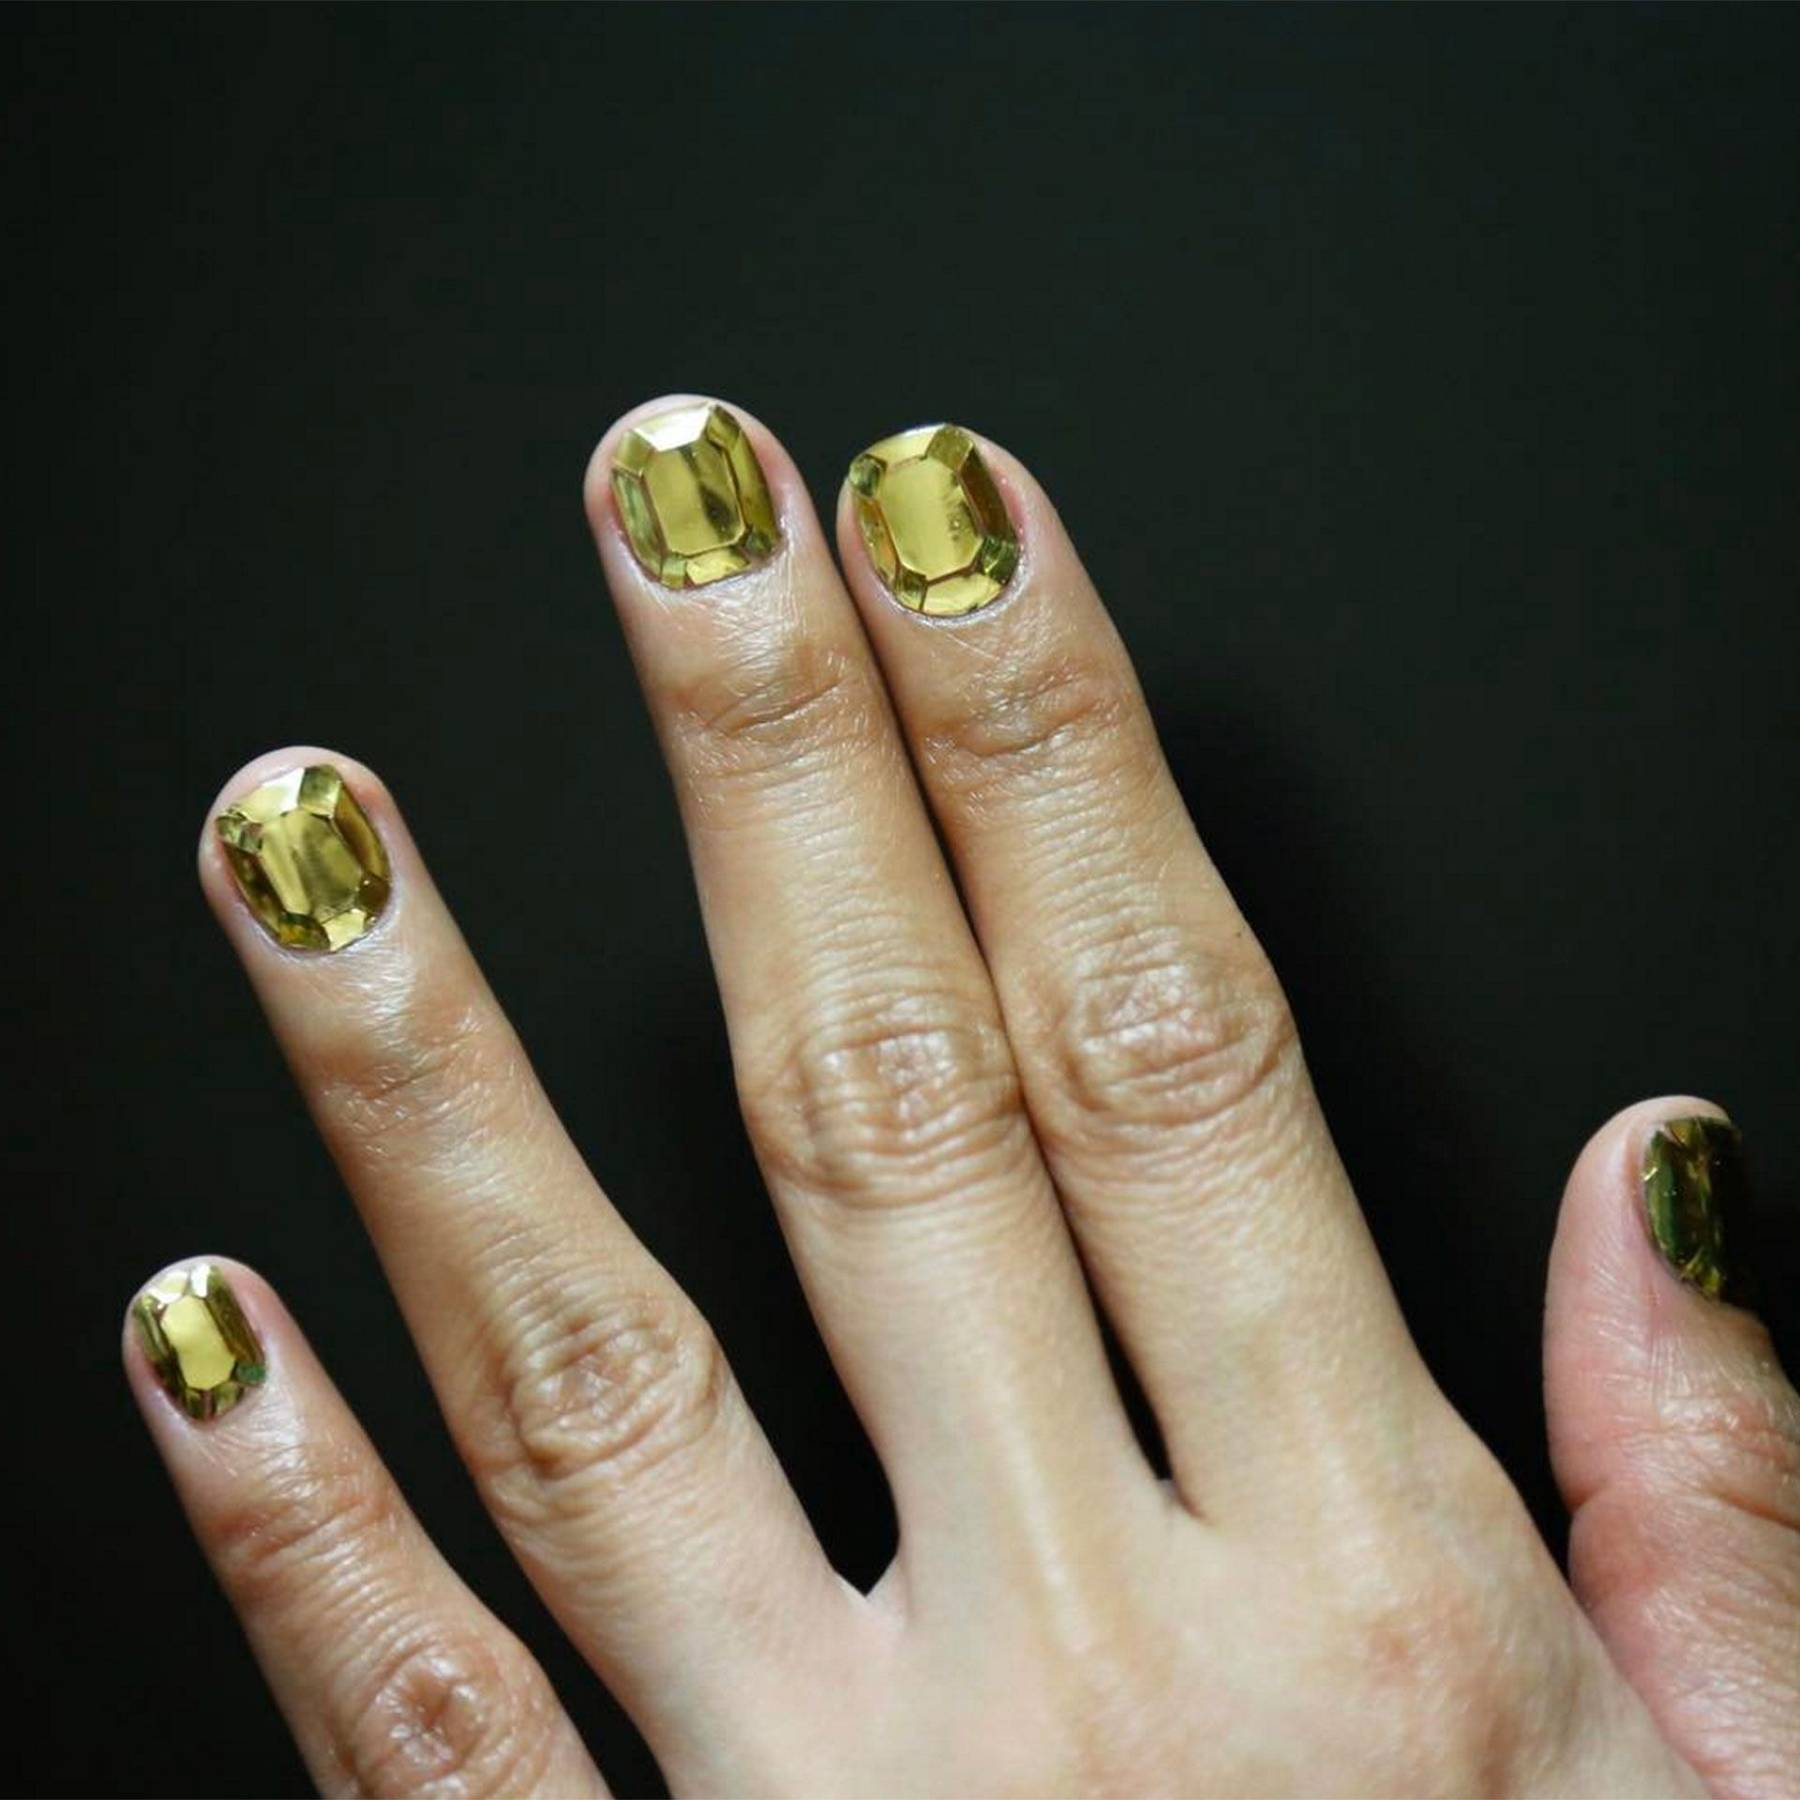 Korean Nail Art Nail Designs Pictures From Instagram Glamour Uk